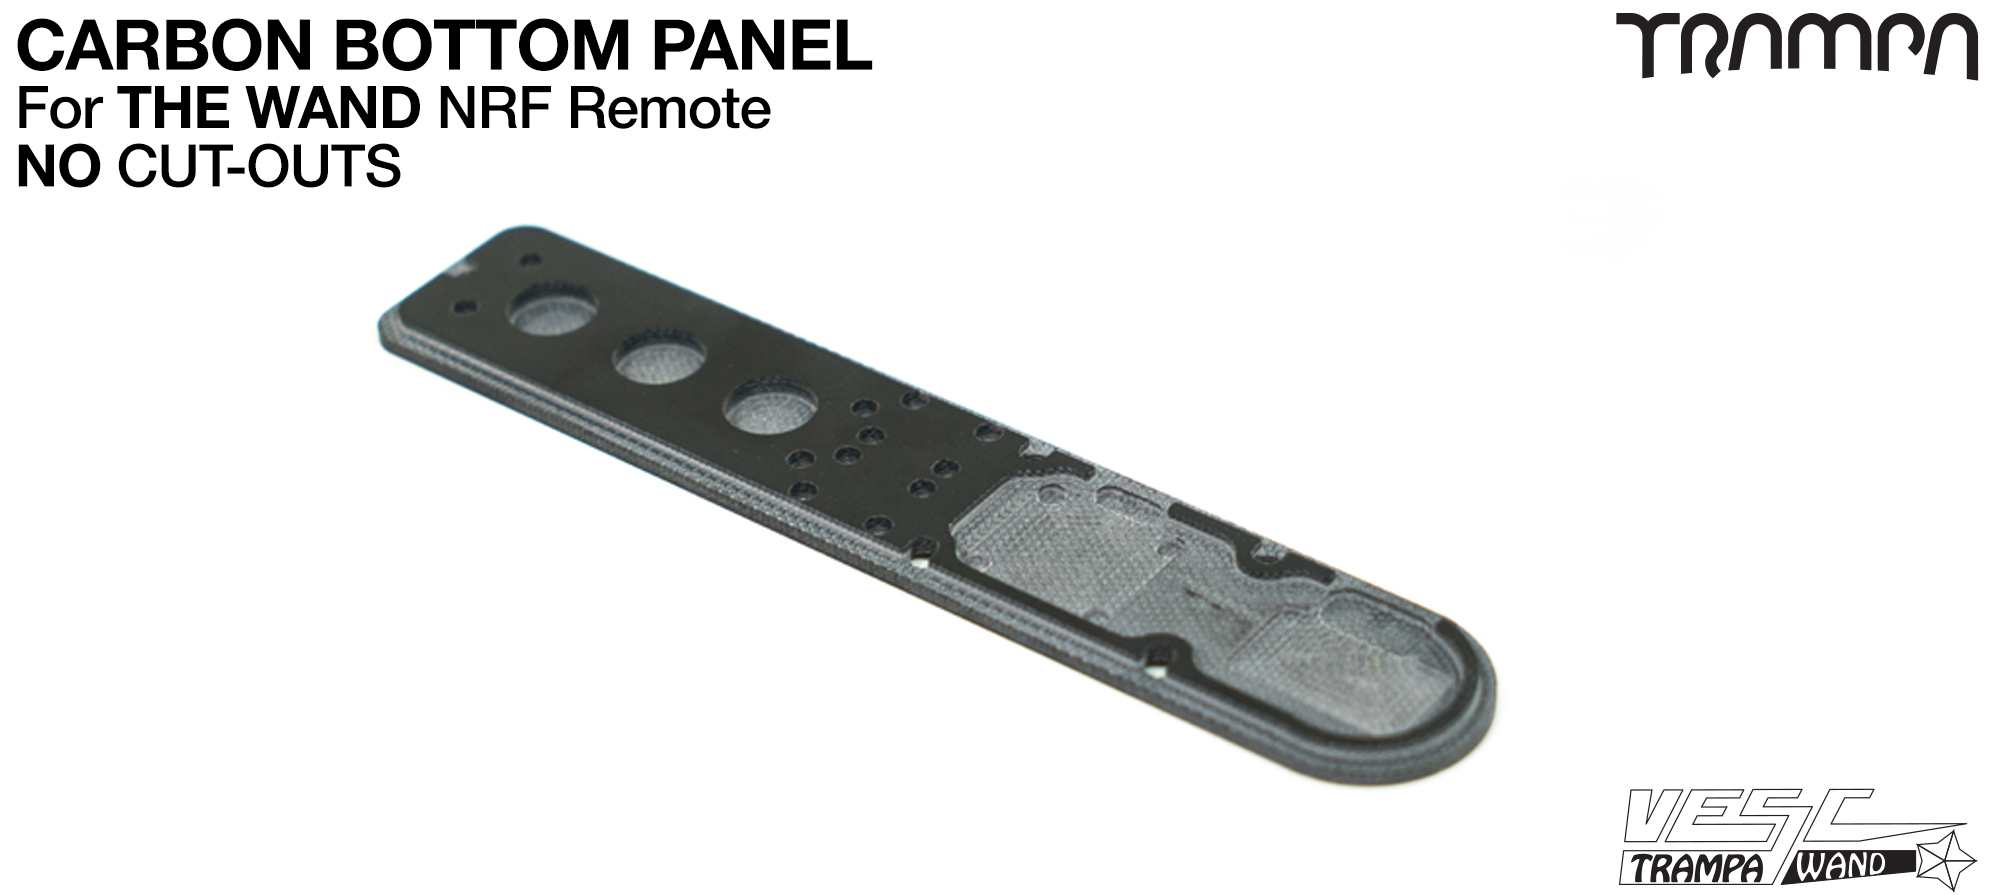 WAND - Carbon Bottom Panel - NO Under Trigger Cut out